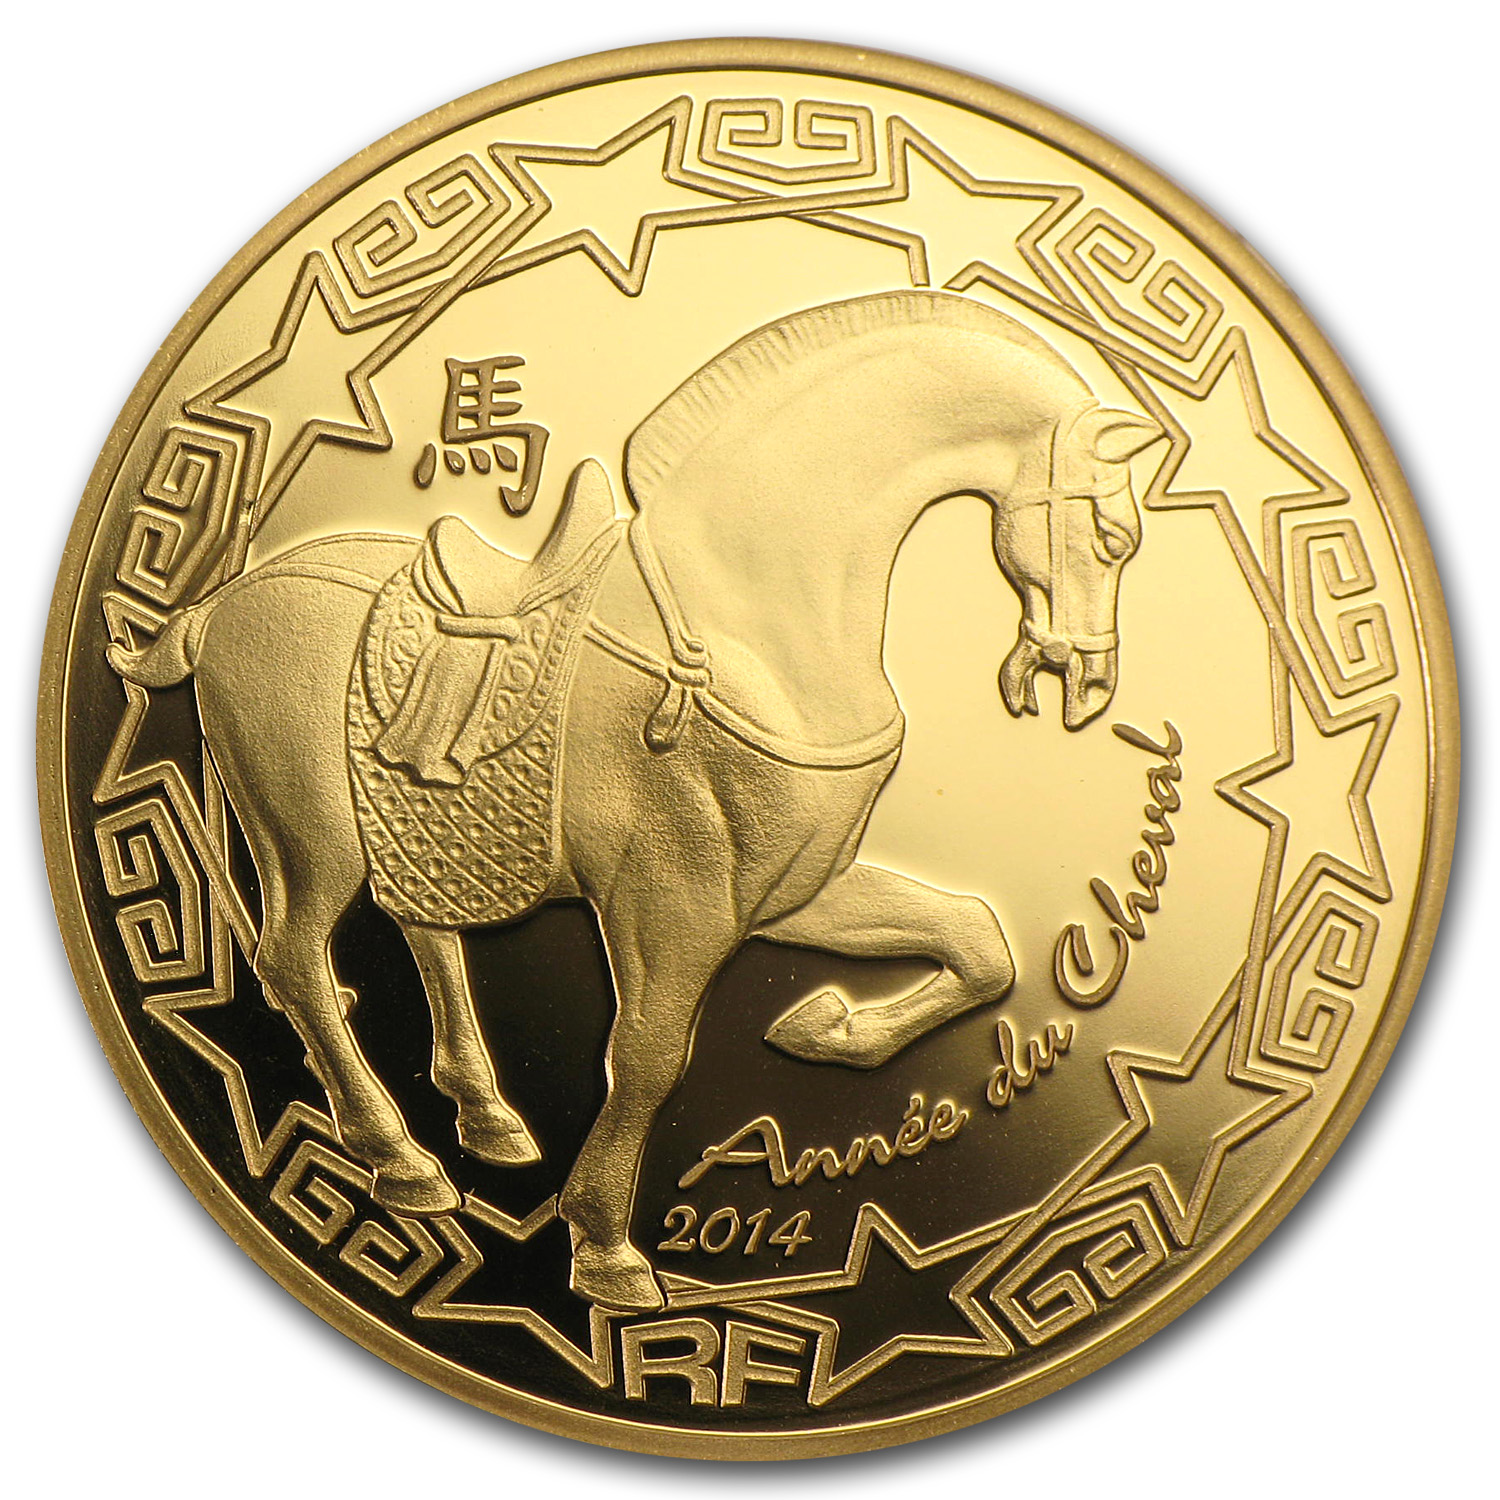 2014 1/4 oz Gold €50 Proof Year of the Horse Lunar Series